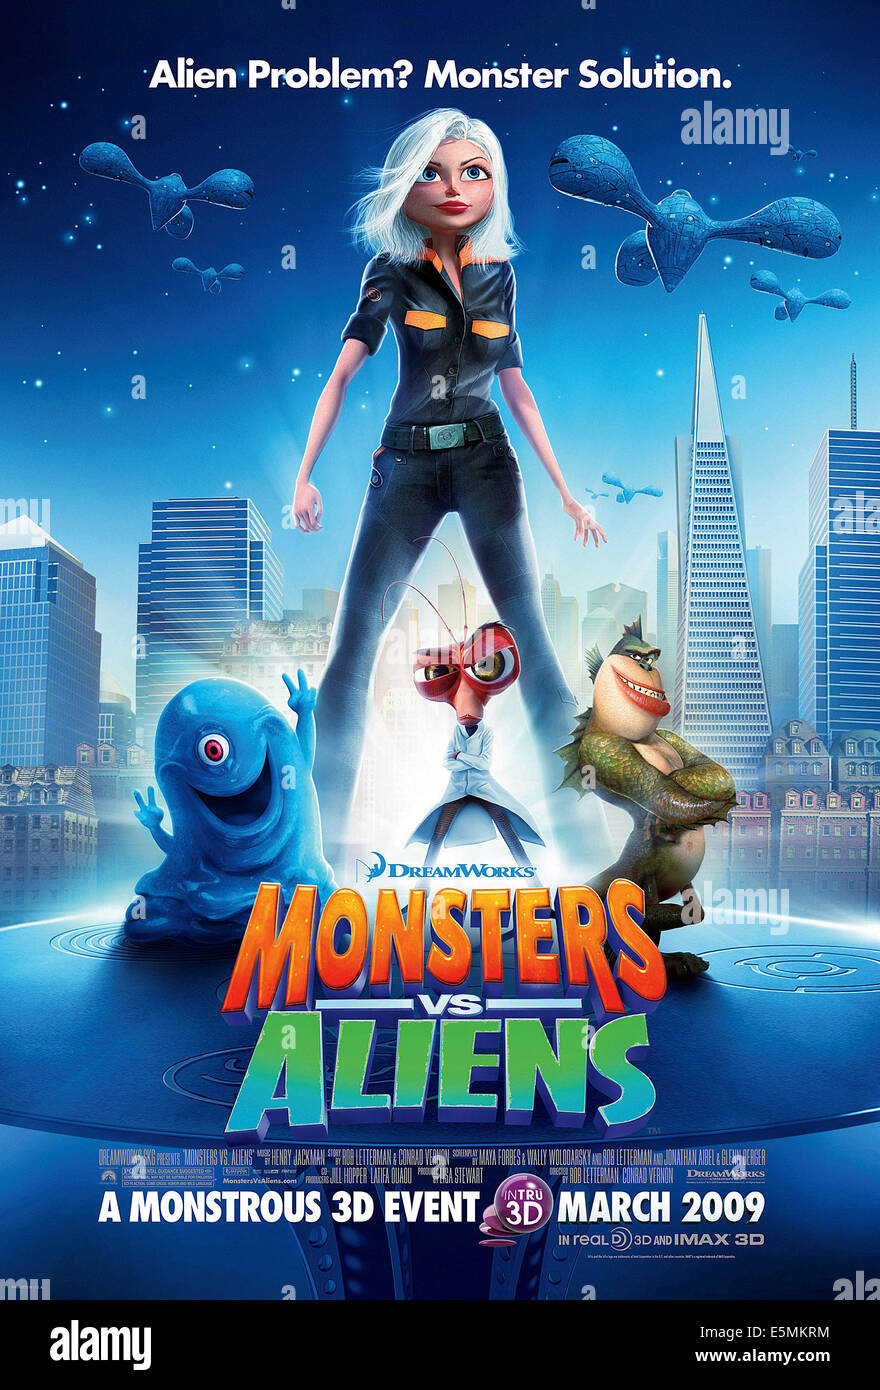 MONSTERS VS. ALIENS, from left: B.O.B. (voice: Seth Rogen), Ginormica (voice: Reese Witherspoon), Dr. Cockroach - Stock Image